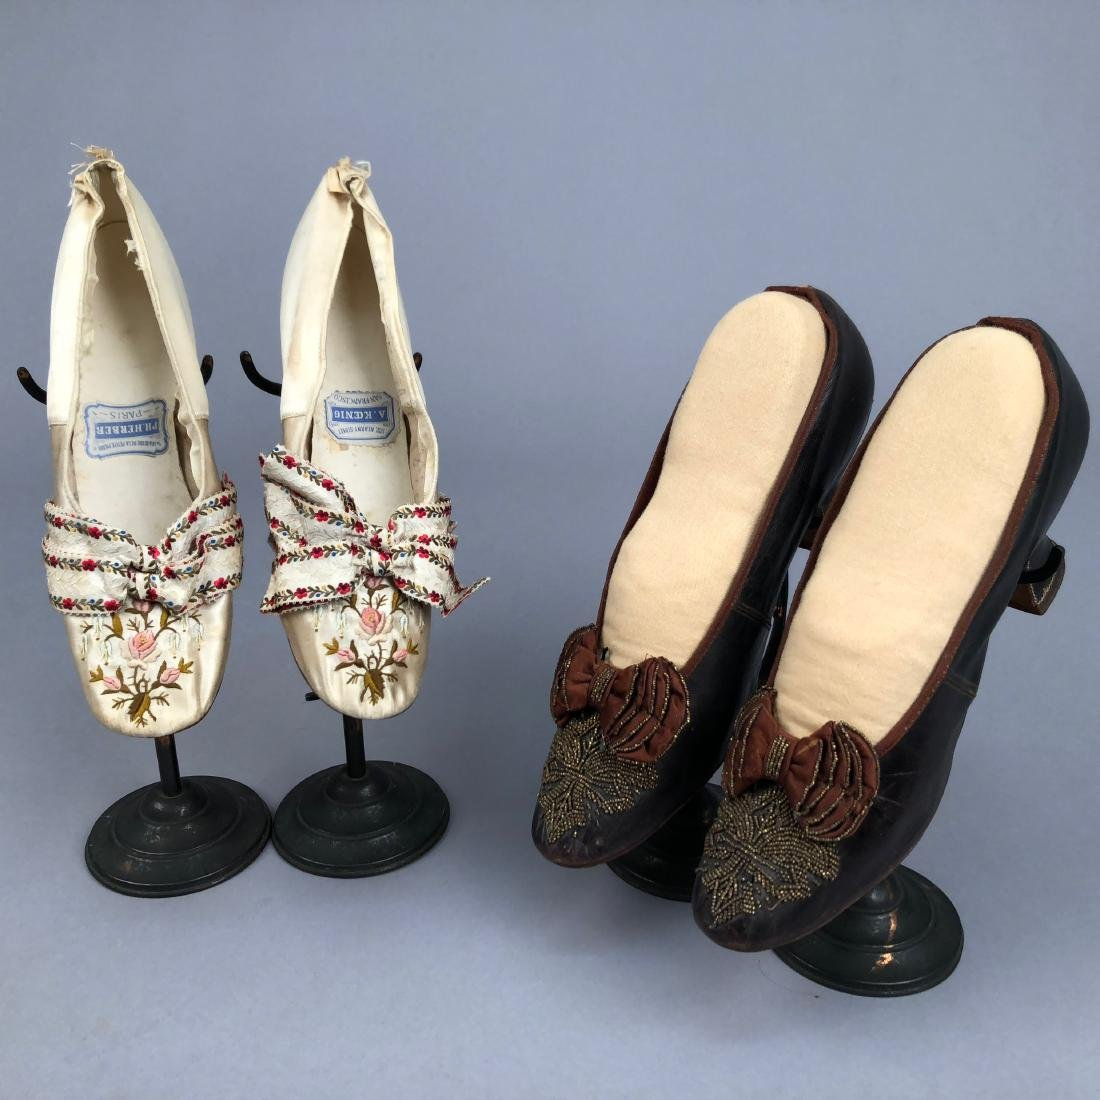 TWO PAIR LADIES' SHOES with LOUIS HEEL, 1870s